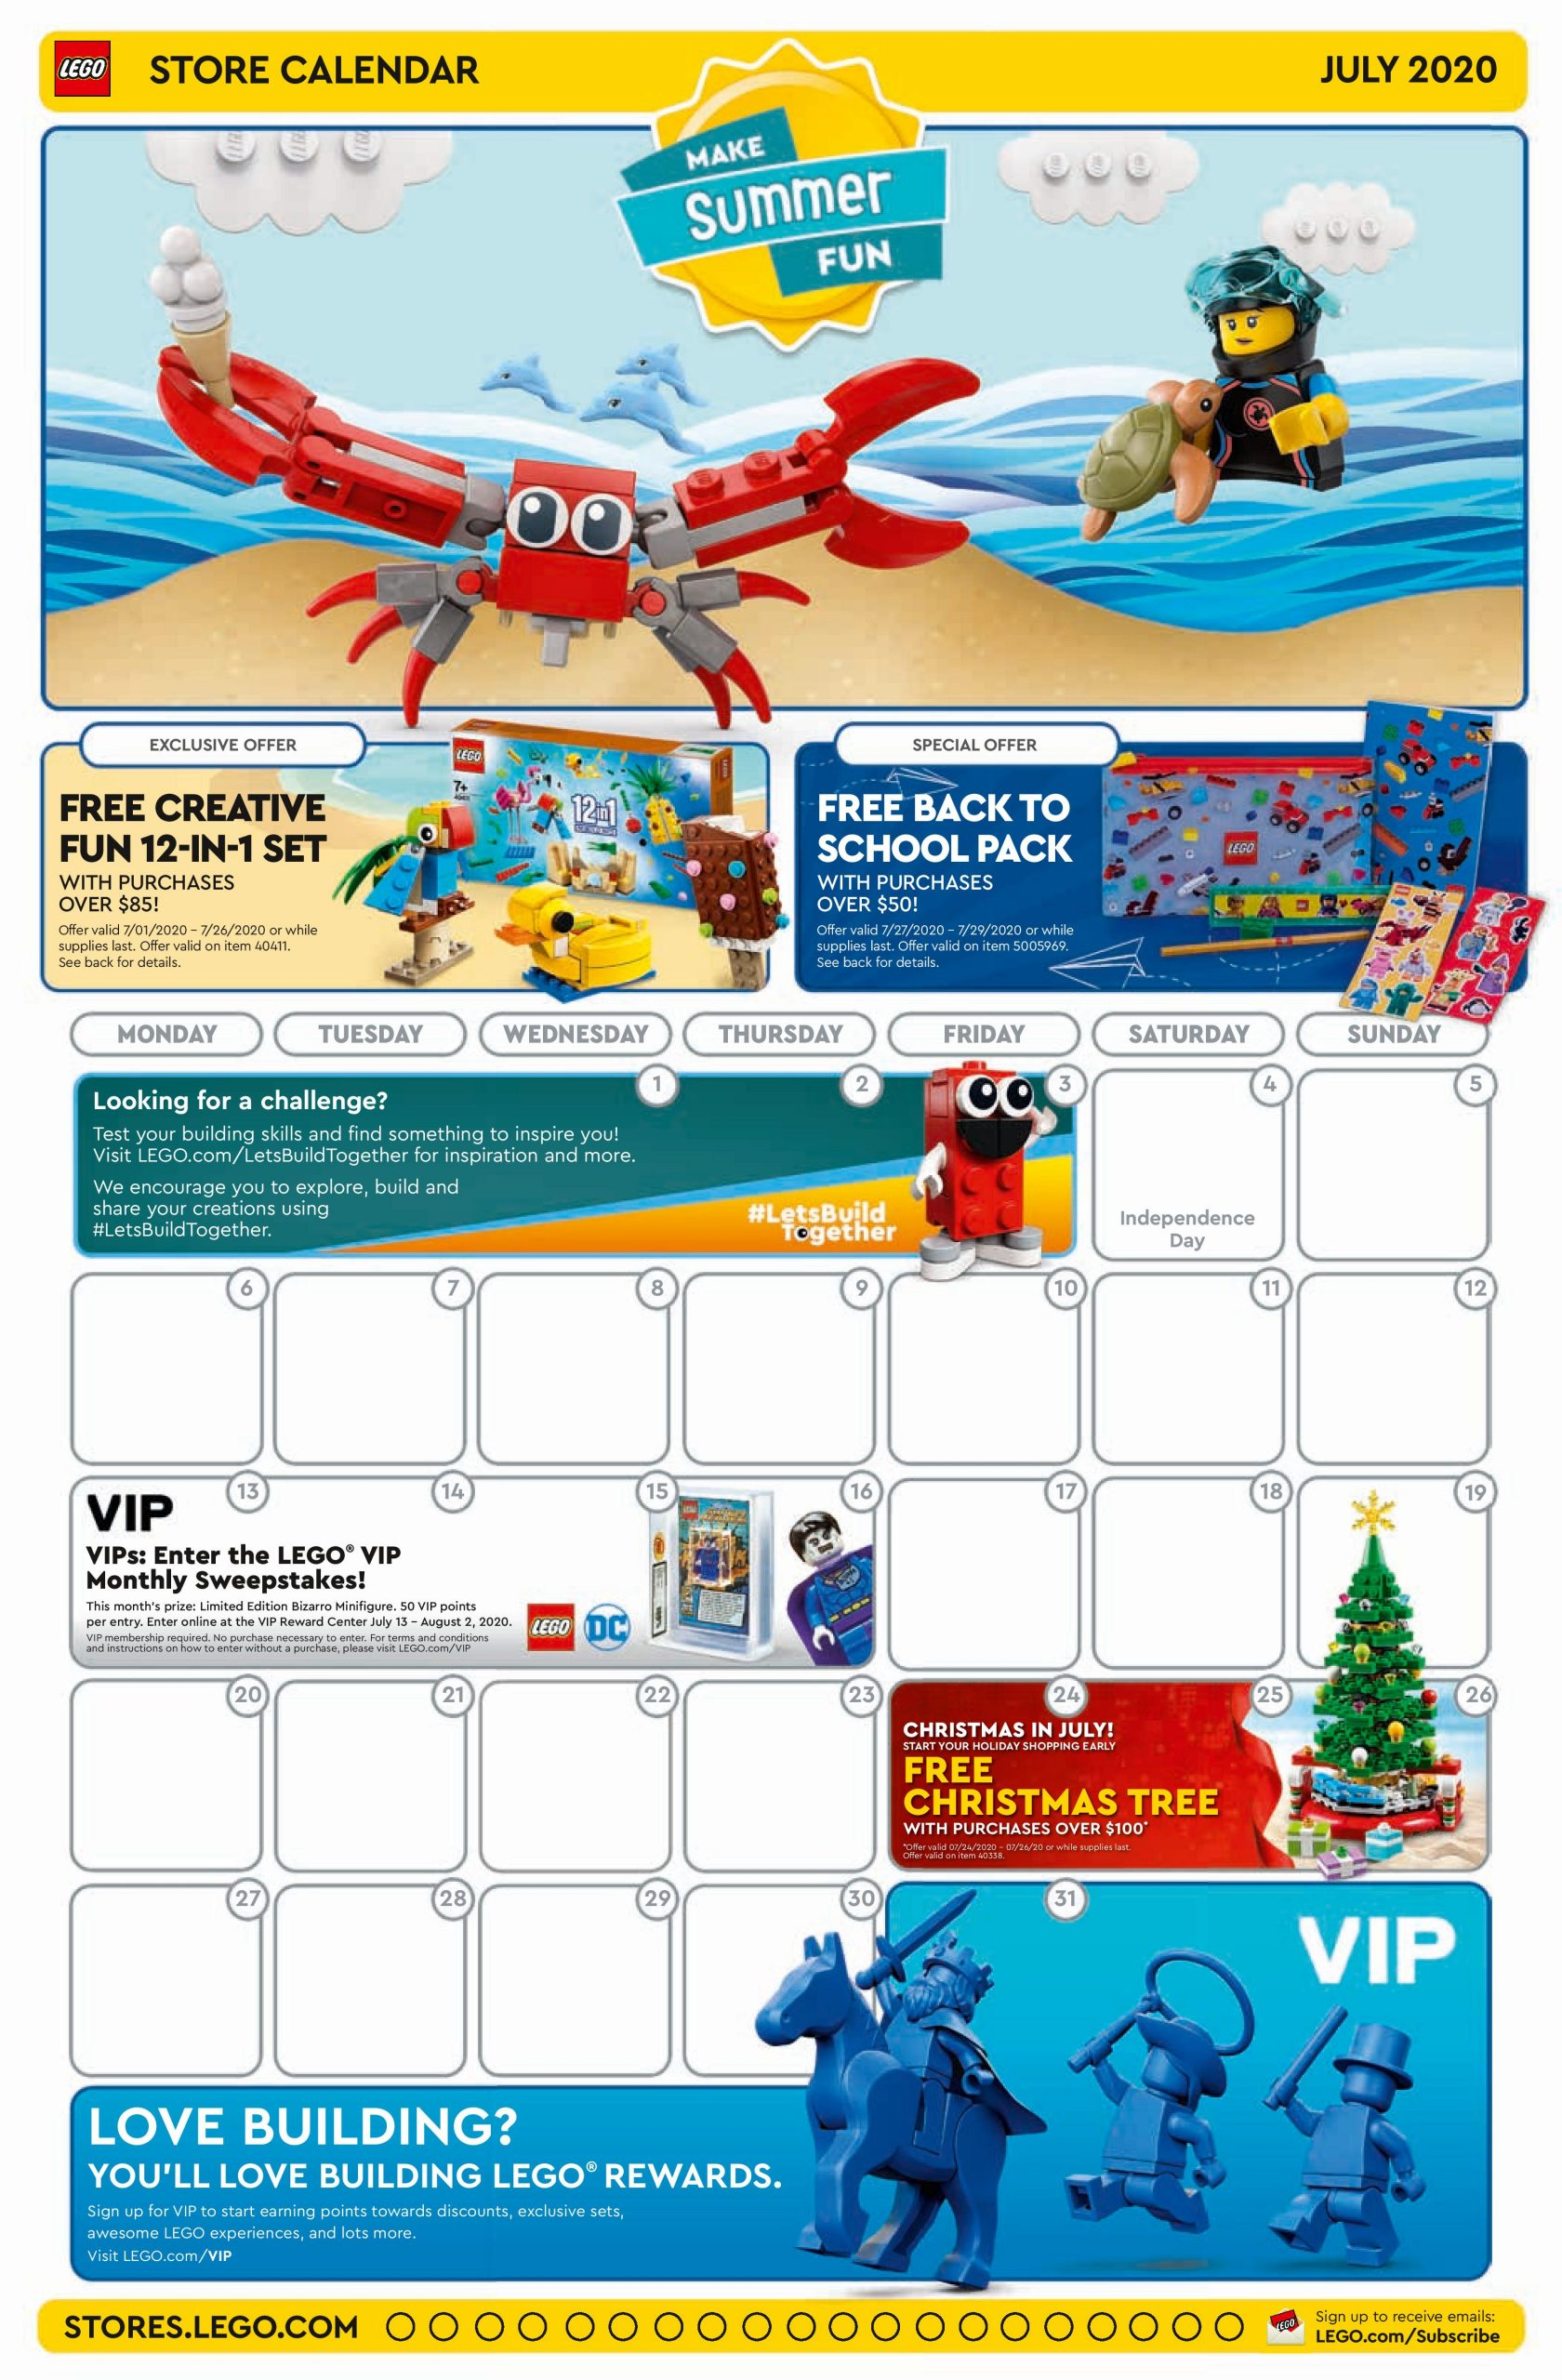 LEGO July 2020 Store Calendar Promotions & Events   The Brick Fan